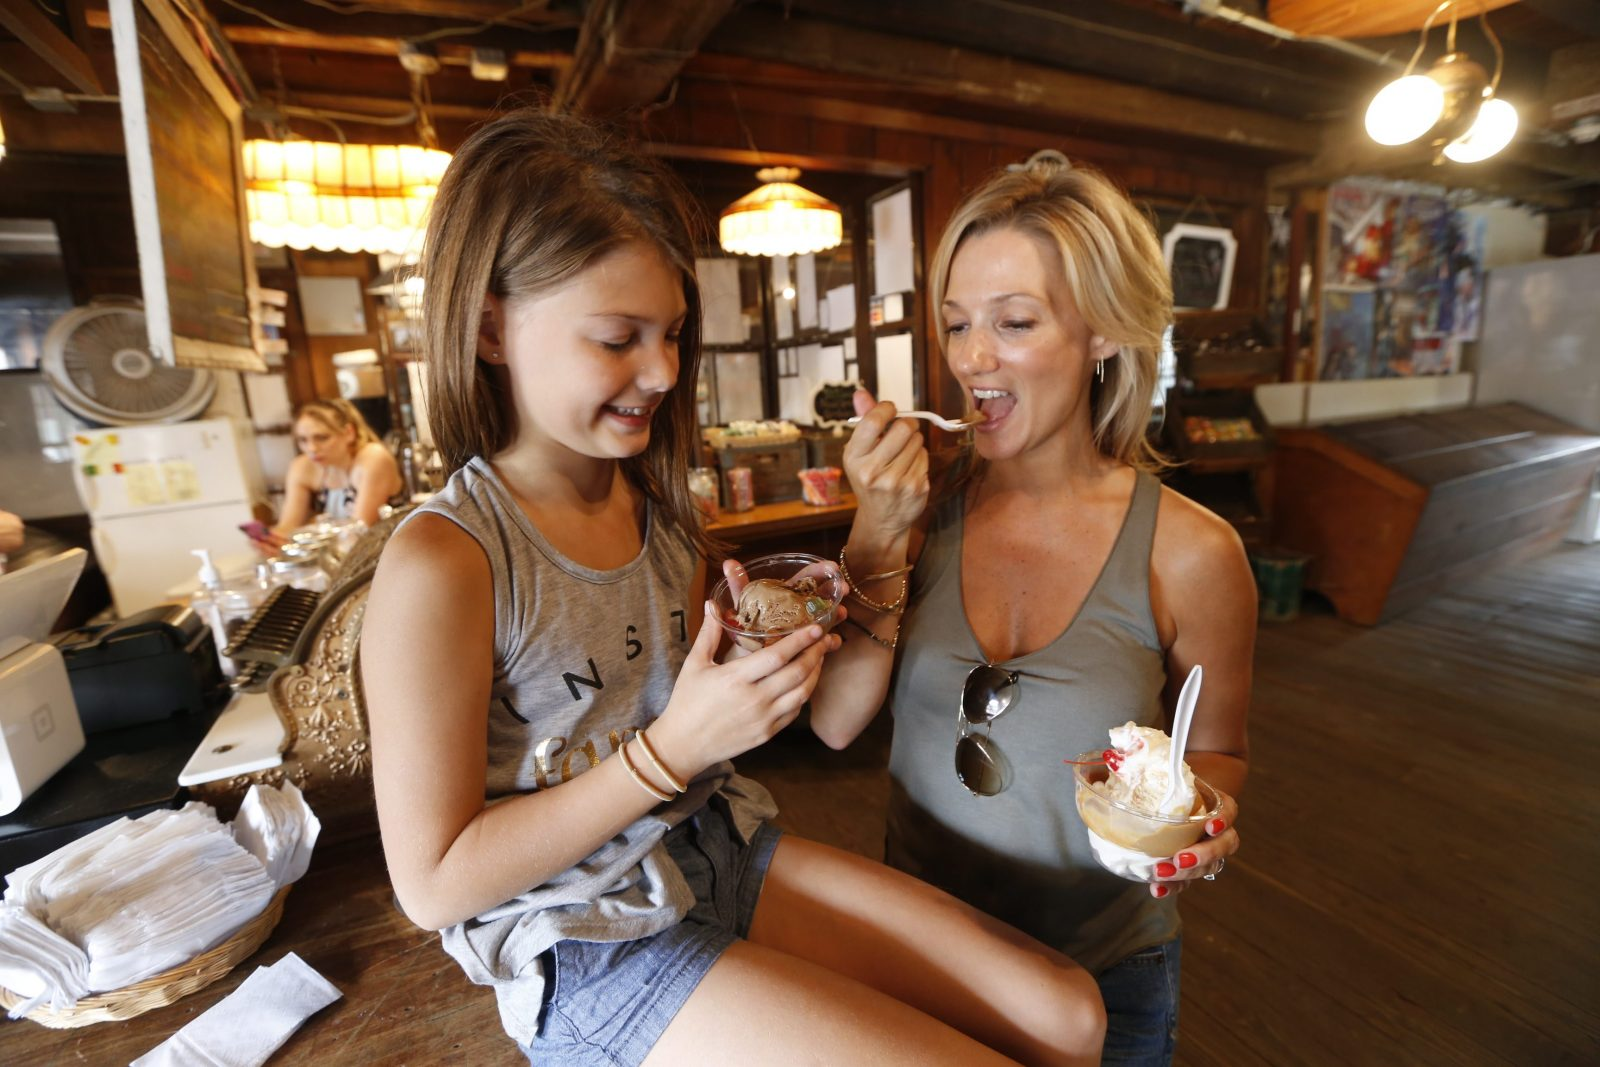 Erika Rosen of Gettzville and her daughter Abigail, 9, enjoy some hand-crafted ice cream at Sweet Jenny's. (Robert Kirkham/Buffalo News)